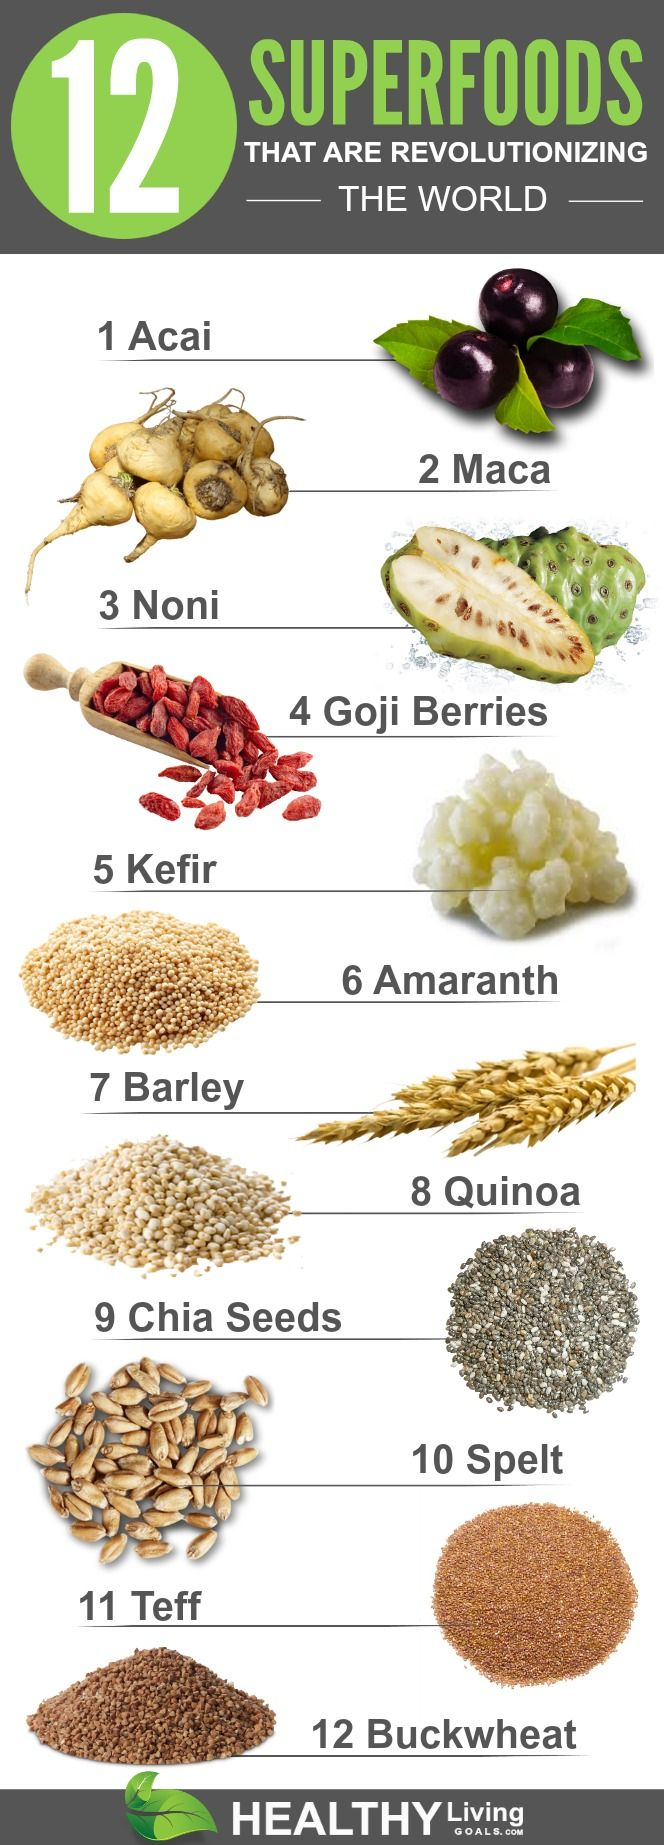 12 Superfoods That Are Revolutionizing The World: You Need To Know The New Food Trends